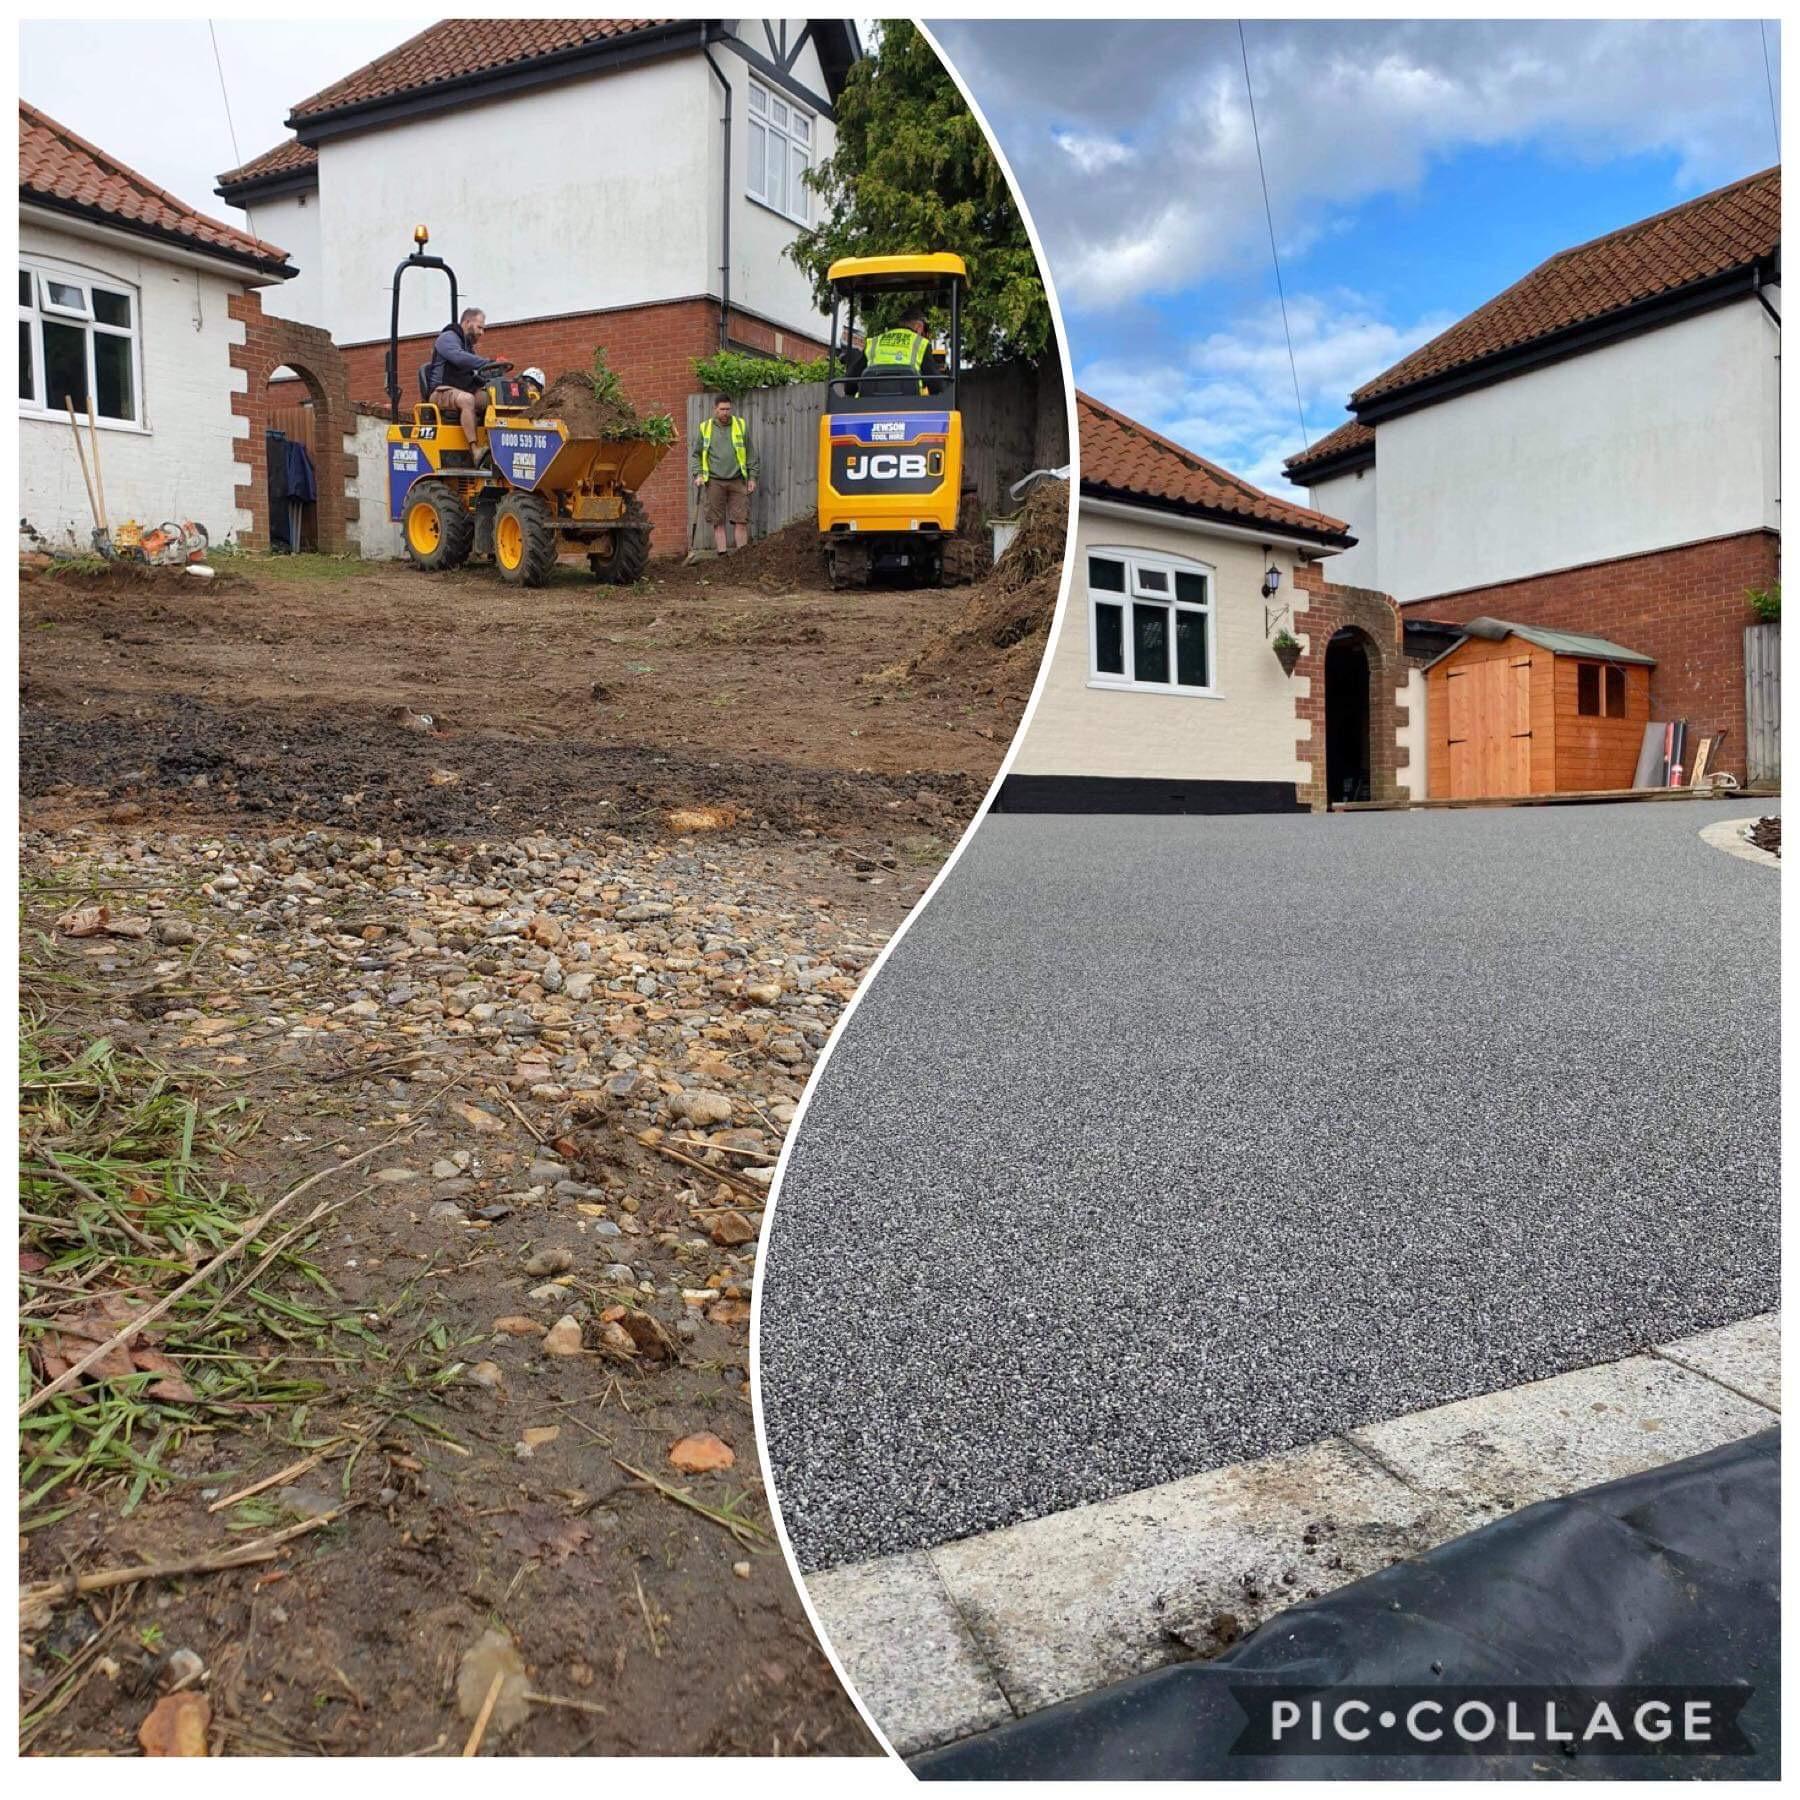 Chris Joy's driveway before and after (Band Of Builders/PA)